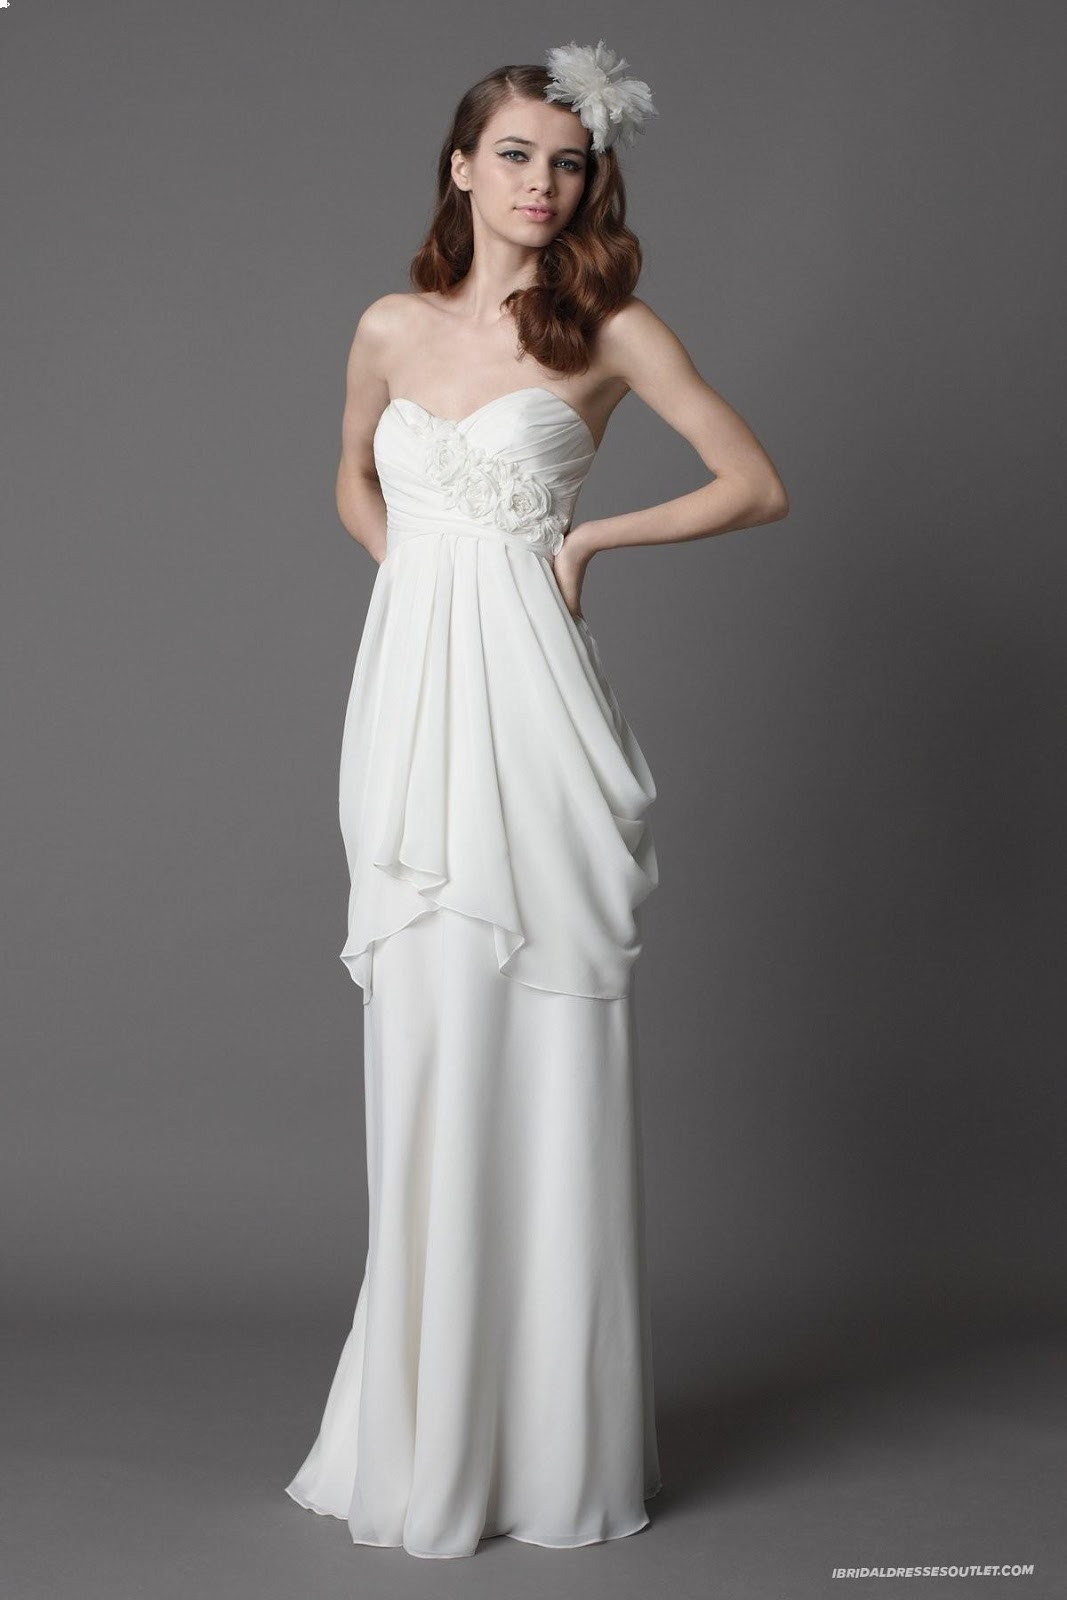 Choose Your Fashion Style: Casual Wedding Dresses for Outdoor Weddings